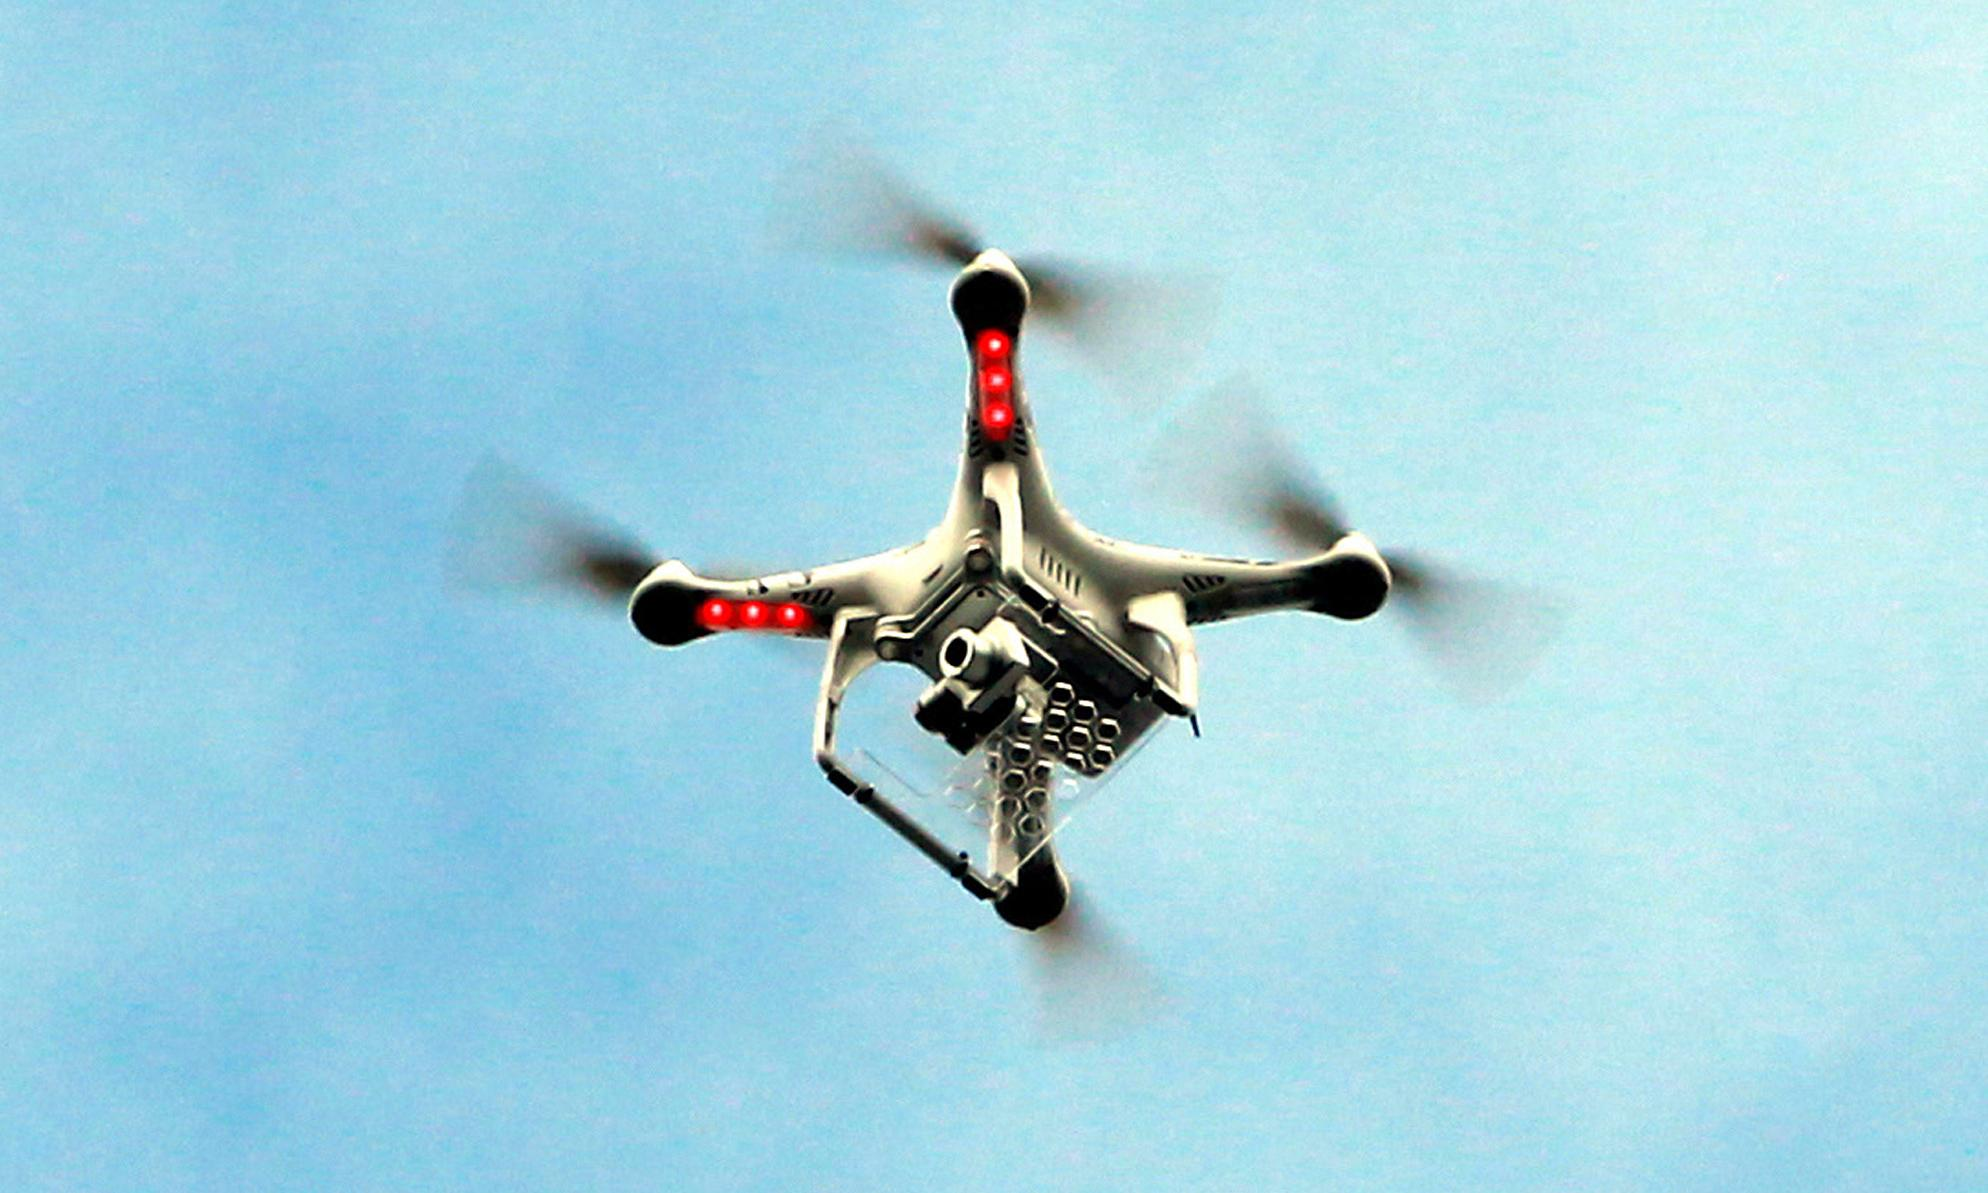 Drone forces grounding of aircraft fighting bushfire in Tasmania